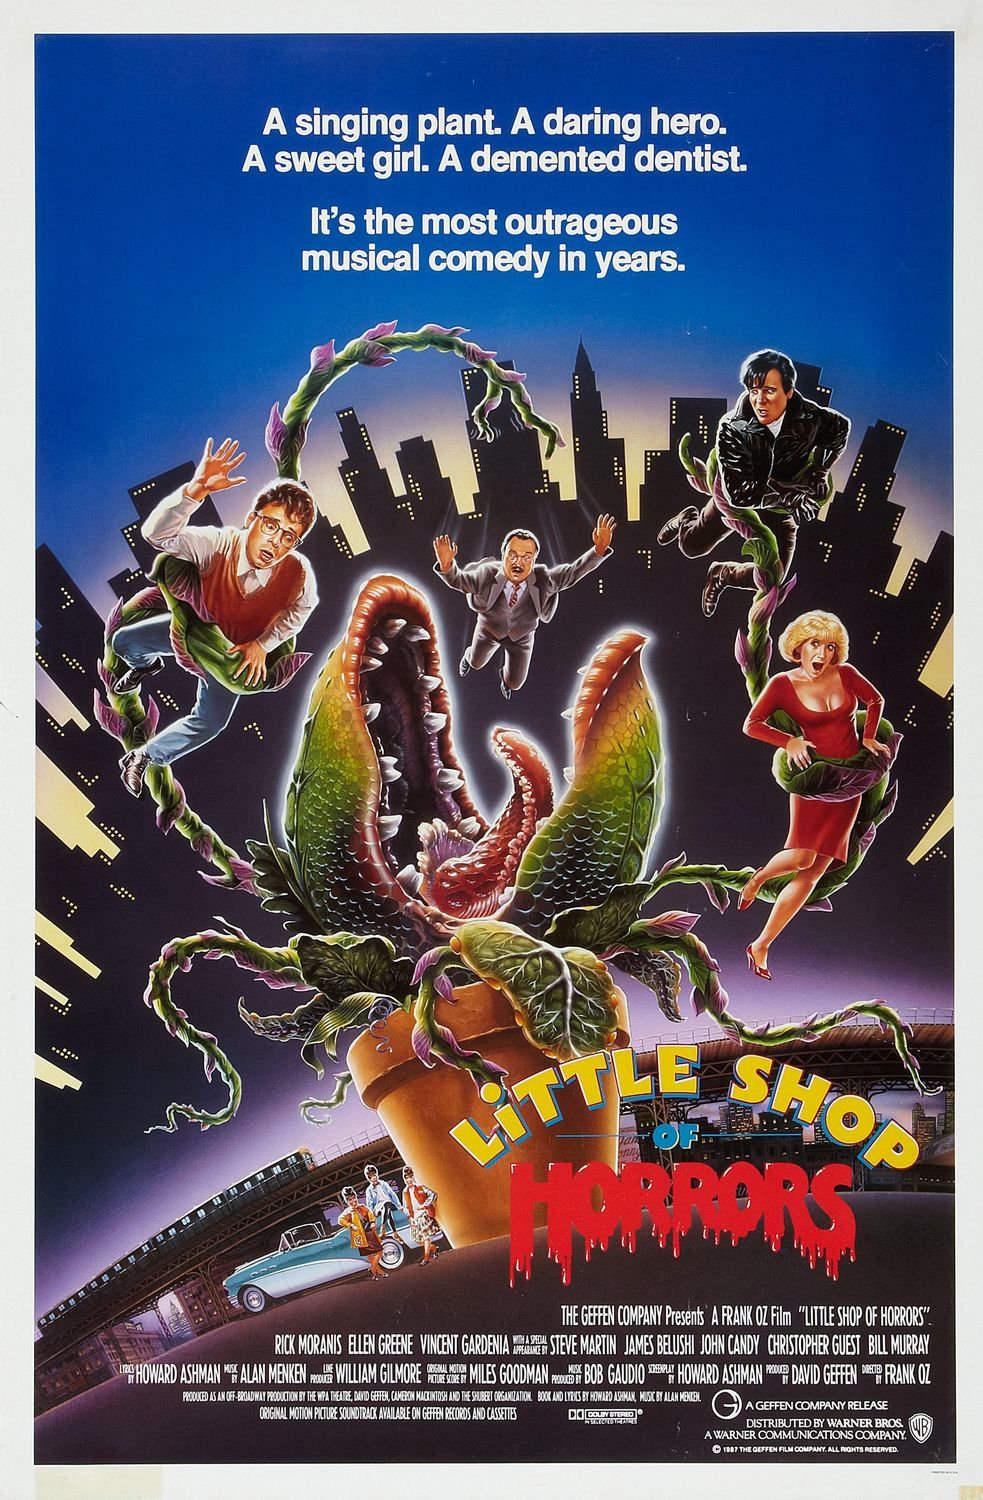 The 1985 movie poster